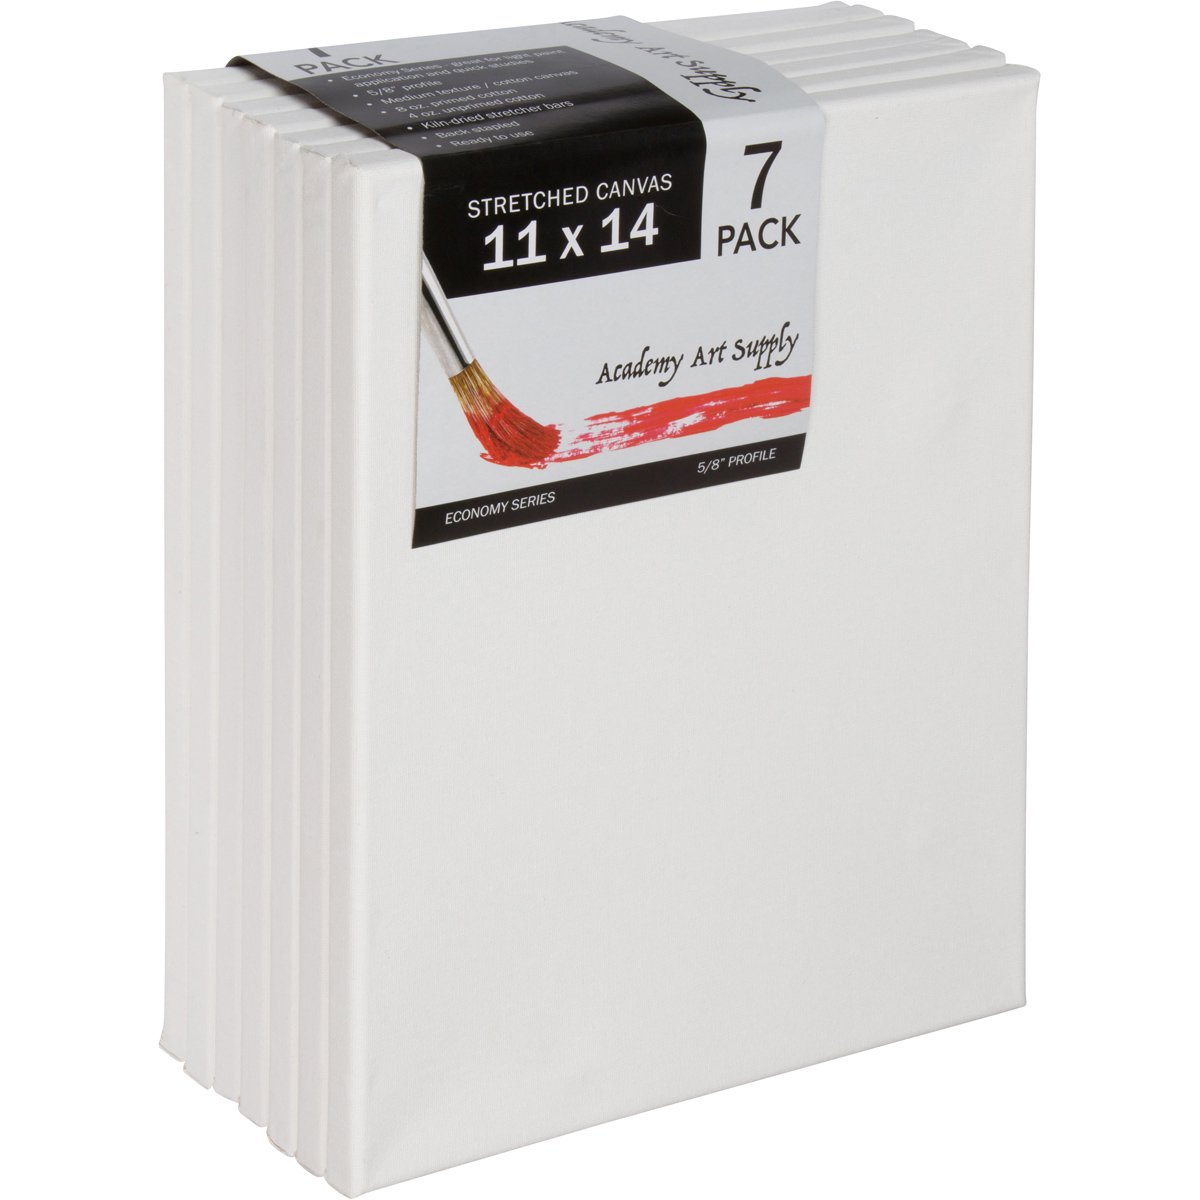 11 X 14 Inch Stretched Canvas Value Pack of 7 by Academy Art Supply